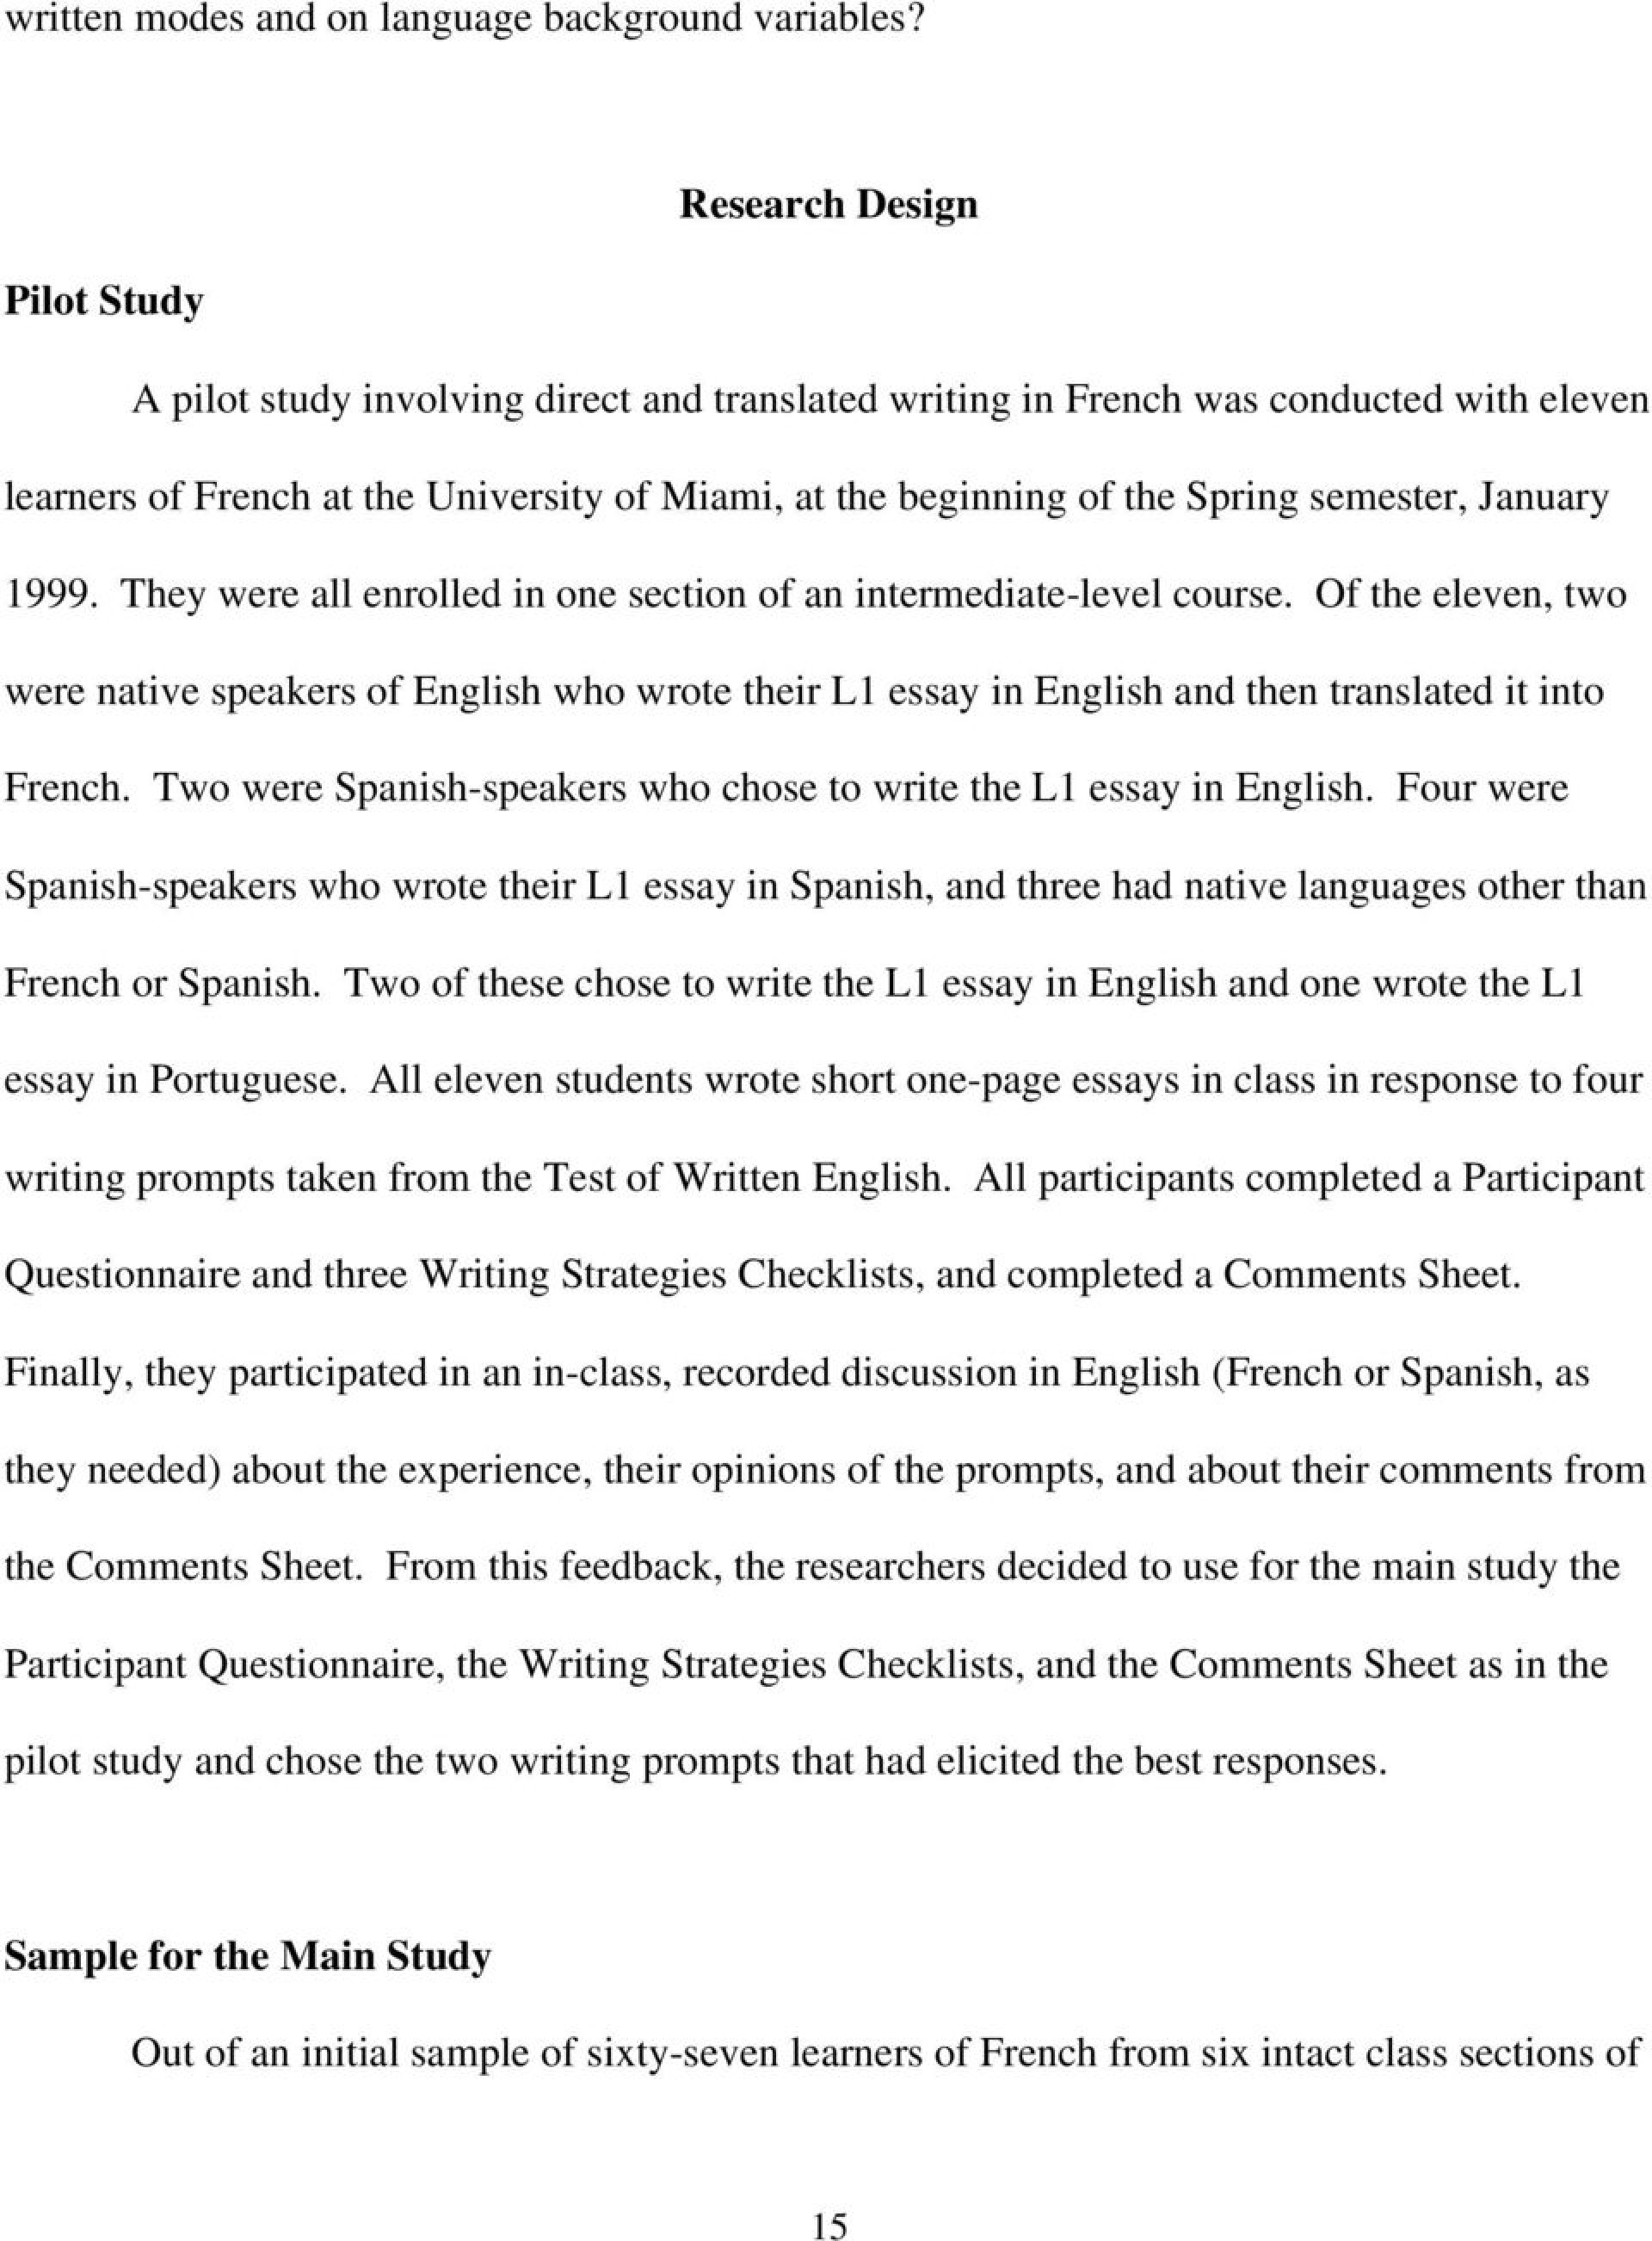 002 Essay Example Essays In Spanish Direct Vs Translated Writing What Students Do And The Google Translate Pa Write Your My Teaching Phrases How To An About Yourself Fascinating Tips For Written 1920